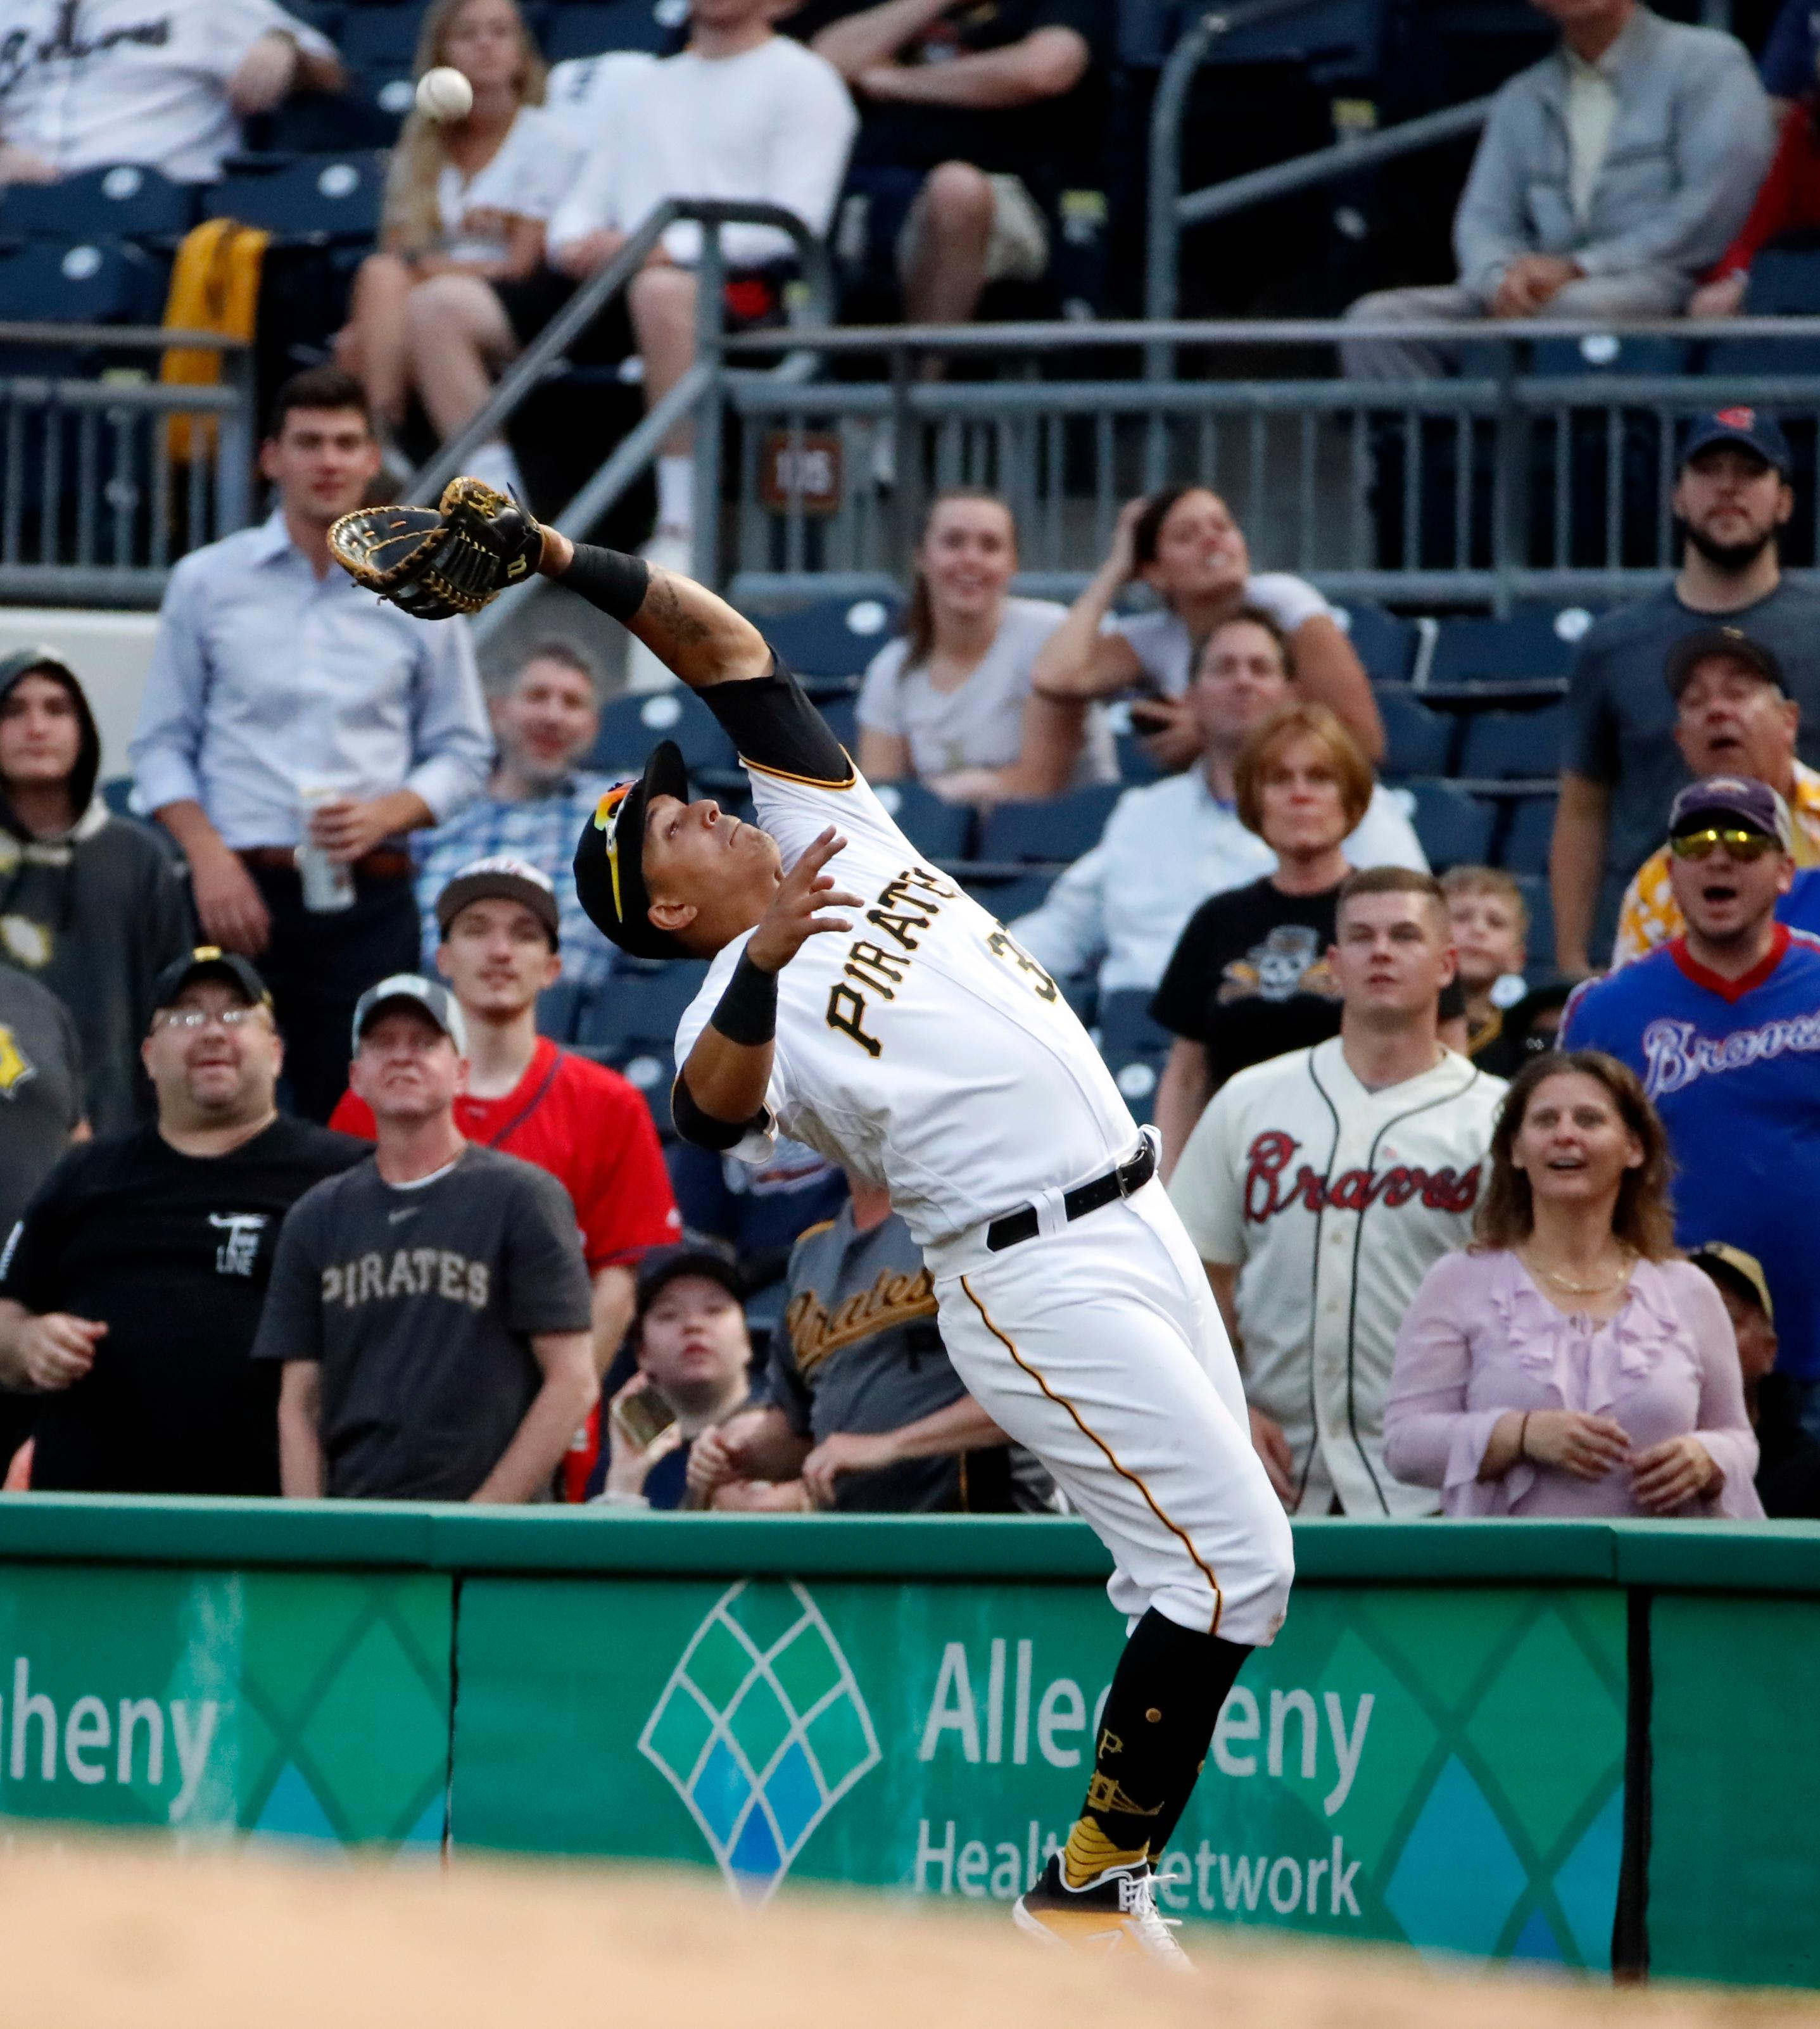 Pittsburgh Pirates first baseman Jose Osuna falls backward as he makes the catch on a pop foul by Atlanta Braves' Austin Riley during the third inning of a baseball game in Pittsburgh, Tuesday, June 4, 2019. (AP Photo/Gene J. Puskar)